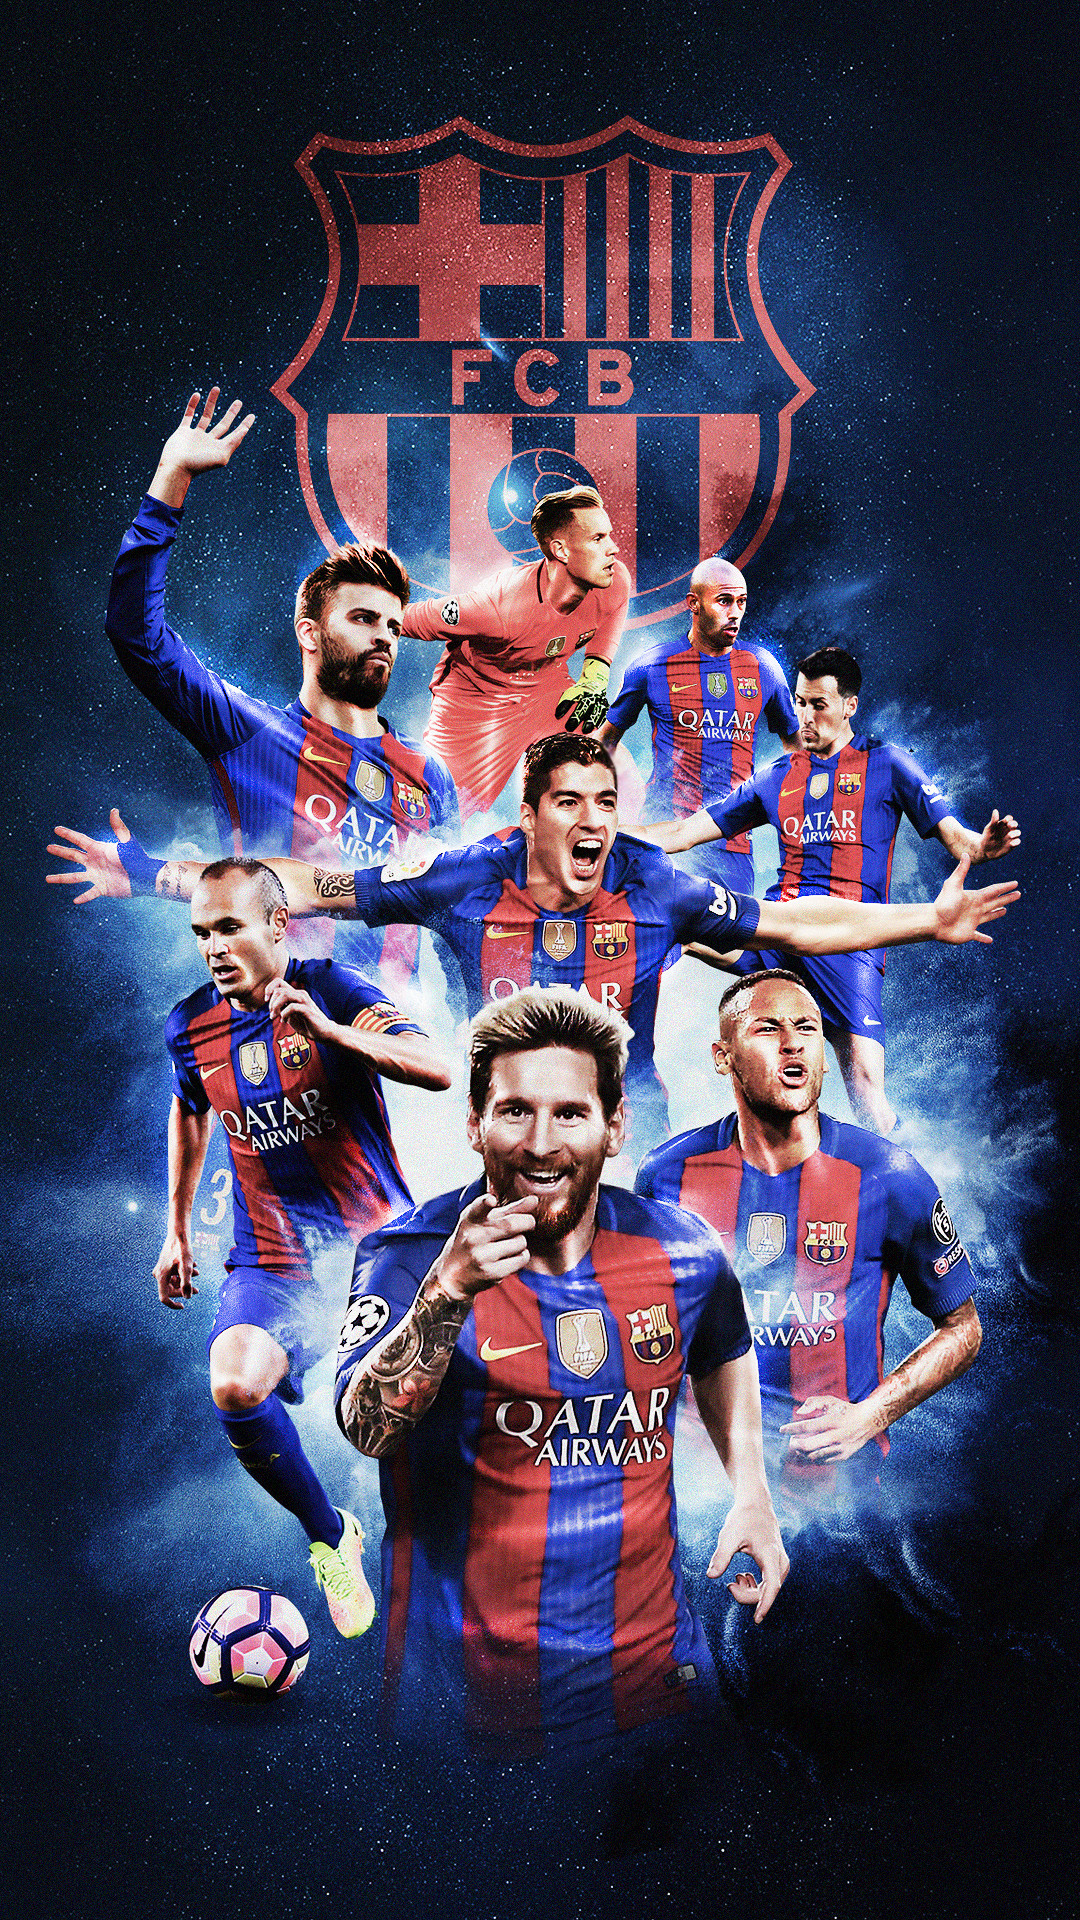 1080x1920 Football Mobile Wallpapers on Behance Barcelona Soccer, Fcb Barcelona,  Barcelona Players, Fifa,